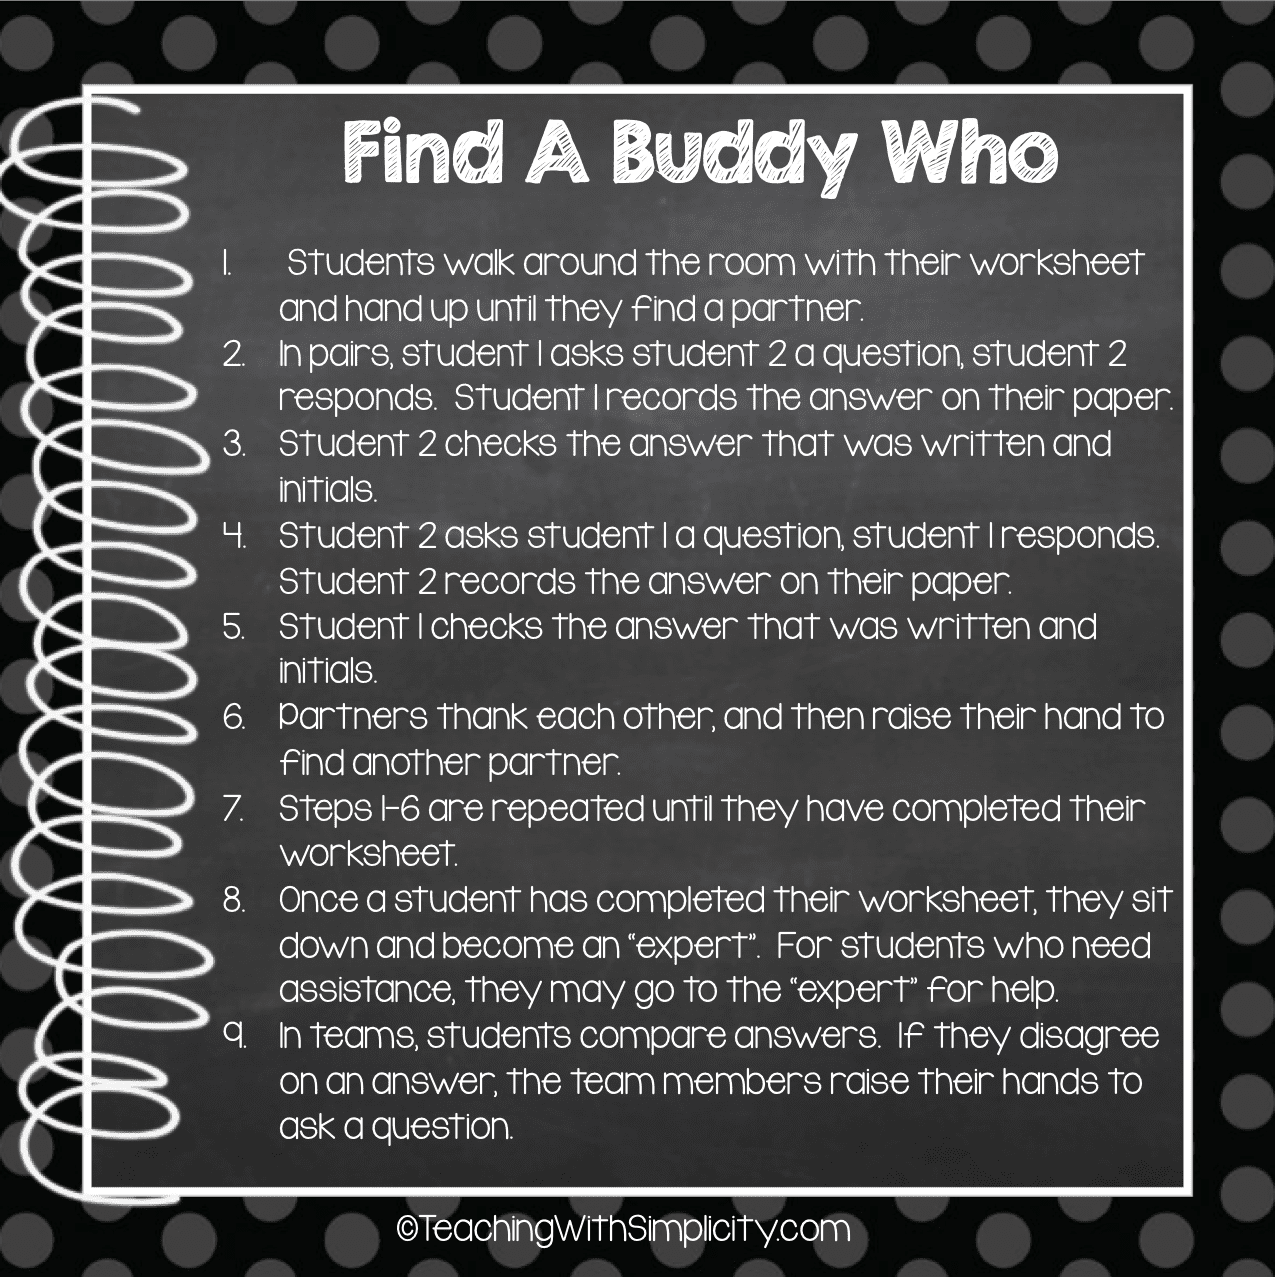 find a buddy who measurement worksheet for students